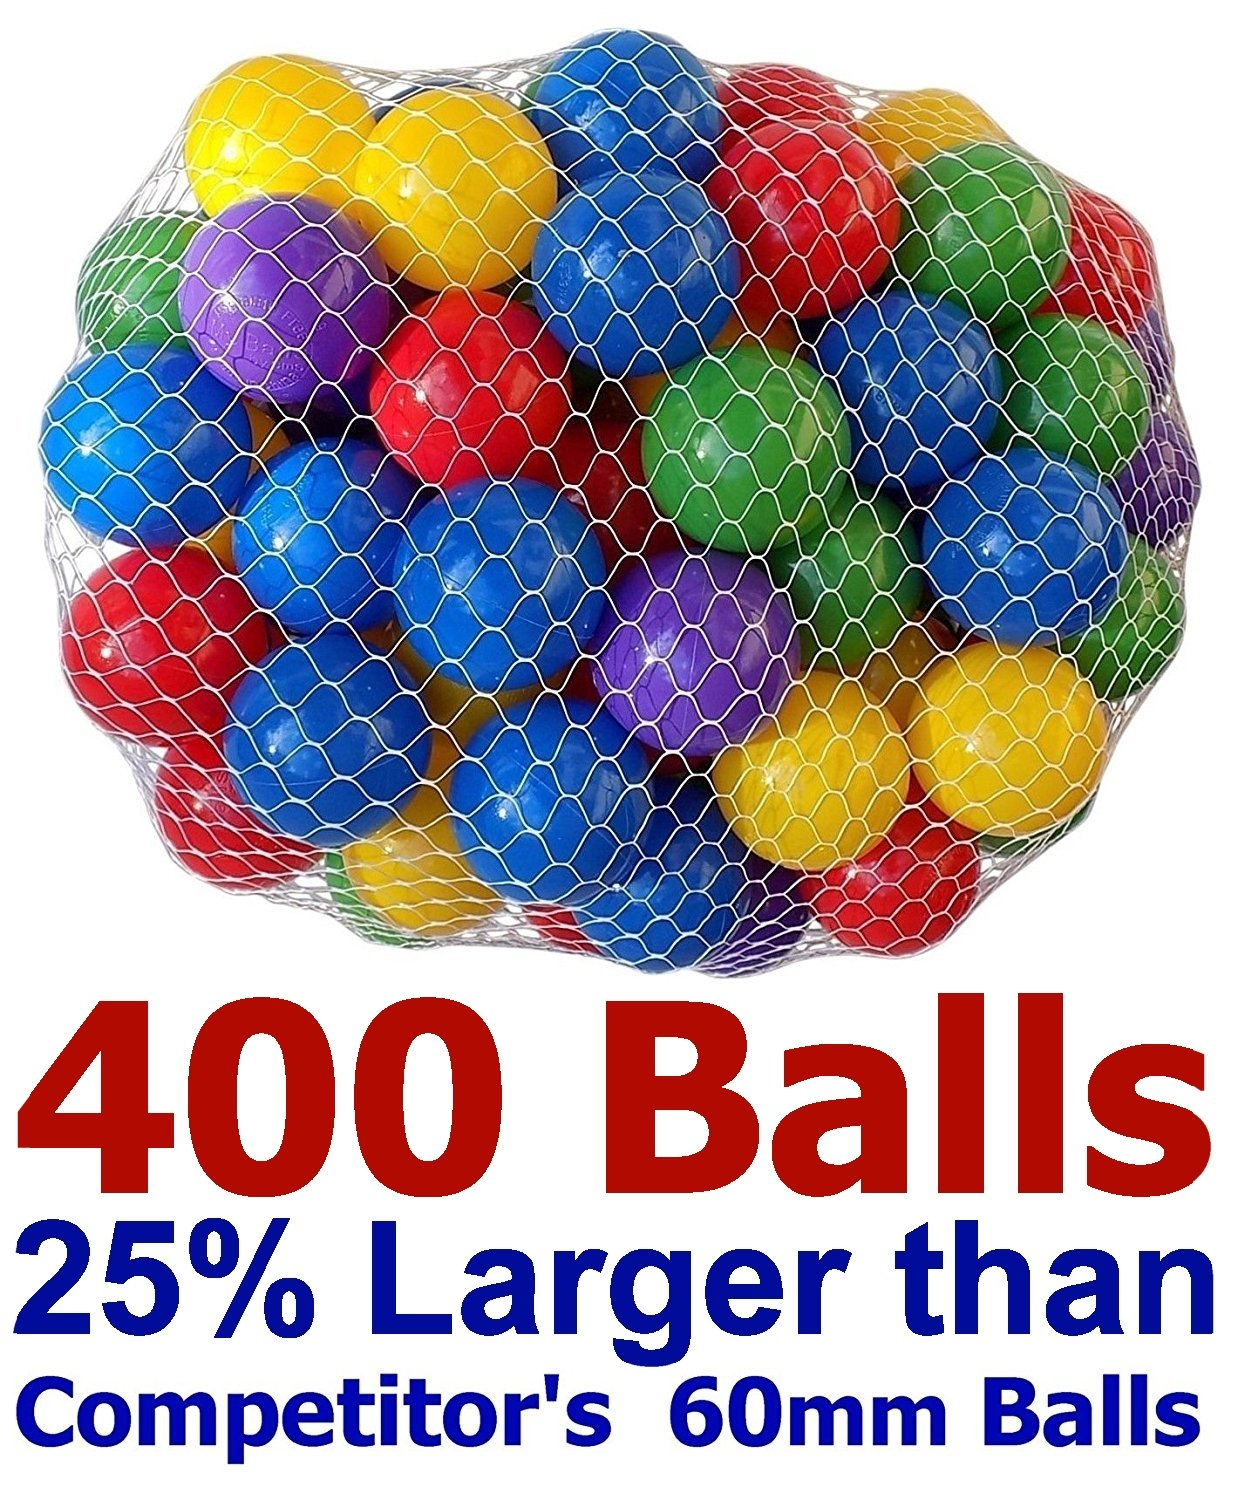 Pack of 400 Large Size 2.5'' Crush-Proof Ball Pit Balls - 5 Colors, Phthalate Free; BPA Free, Non-Toxic, Non-Recycled Plastic (Pack of 400) by My Balls